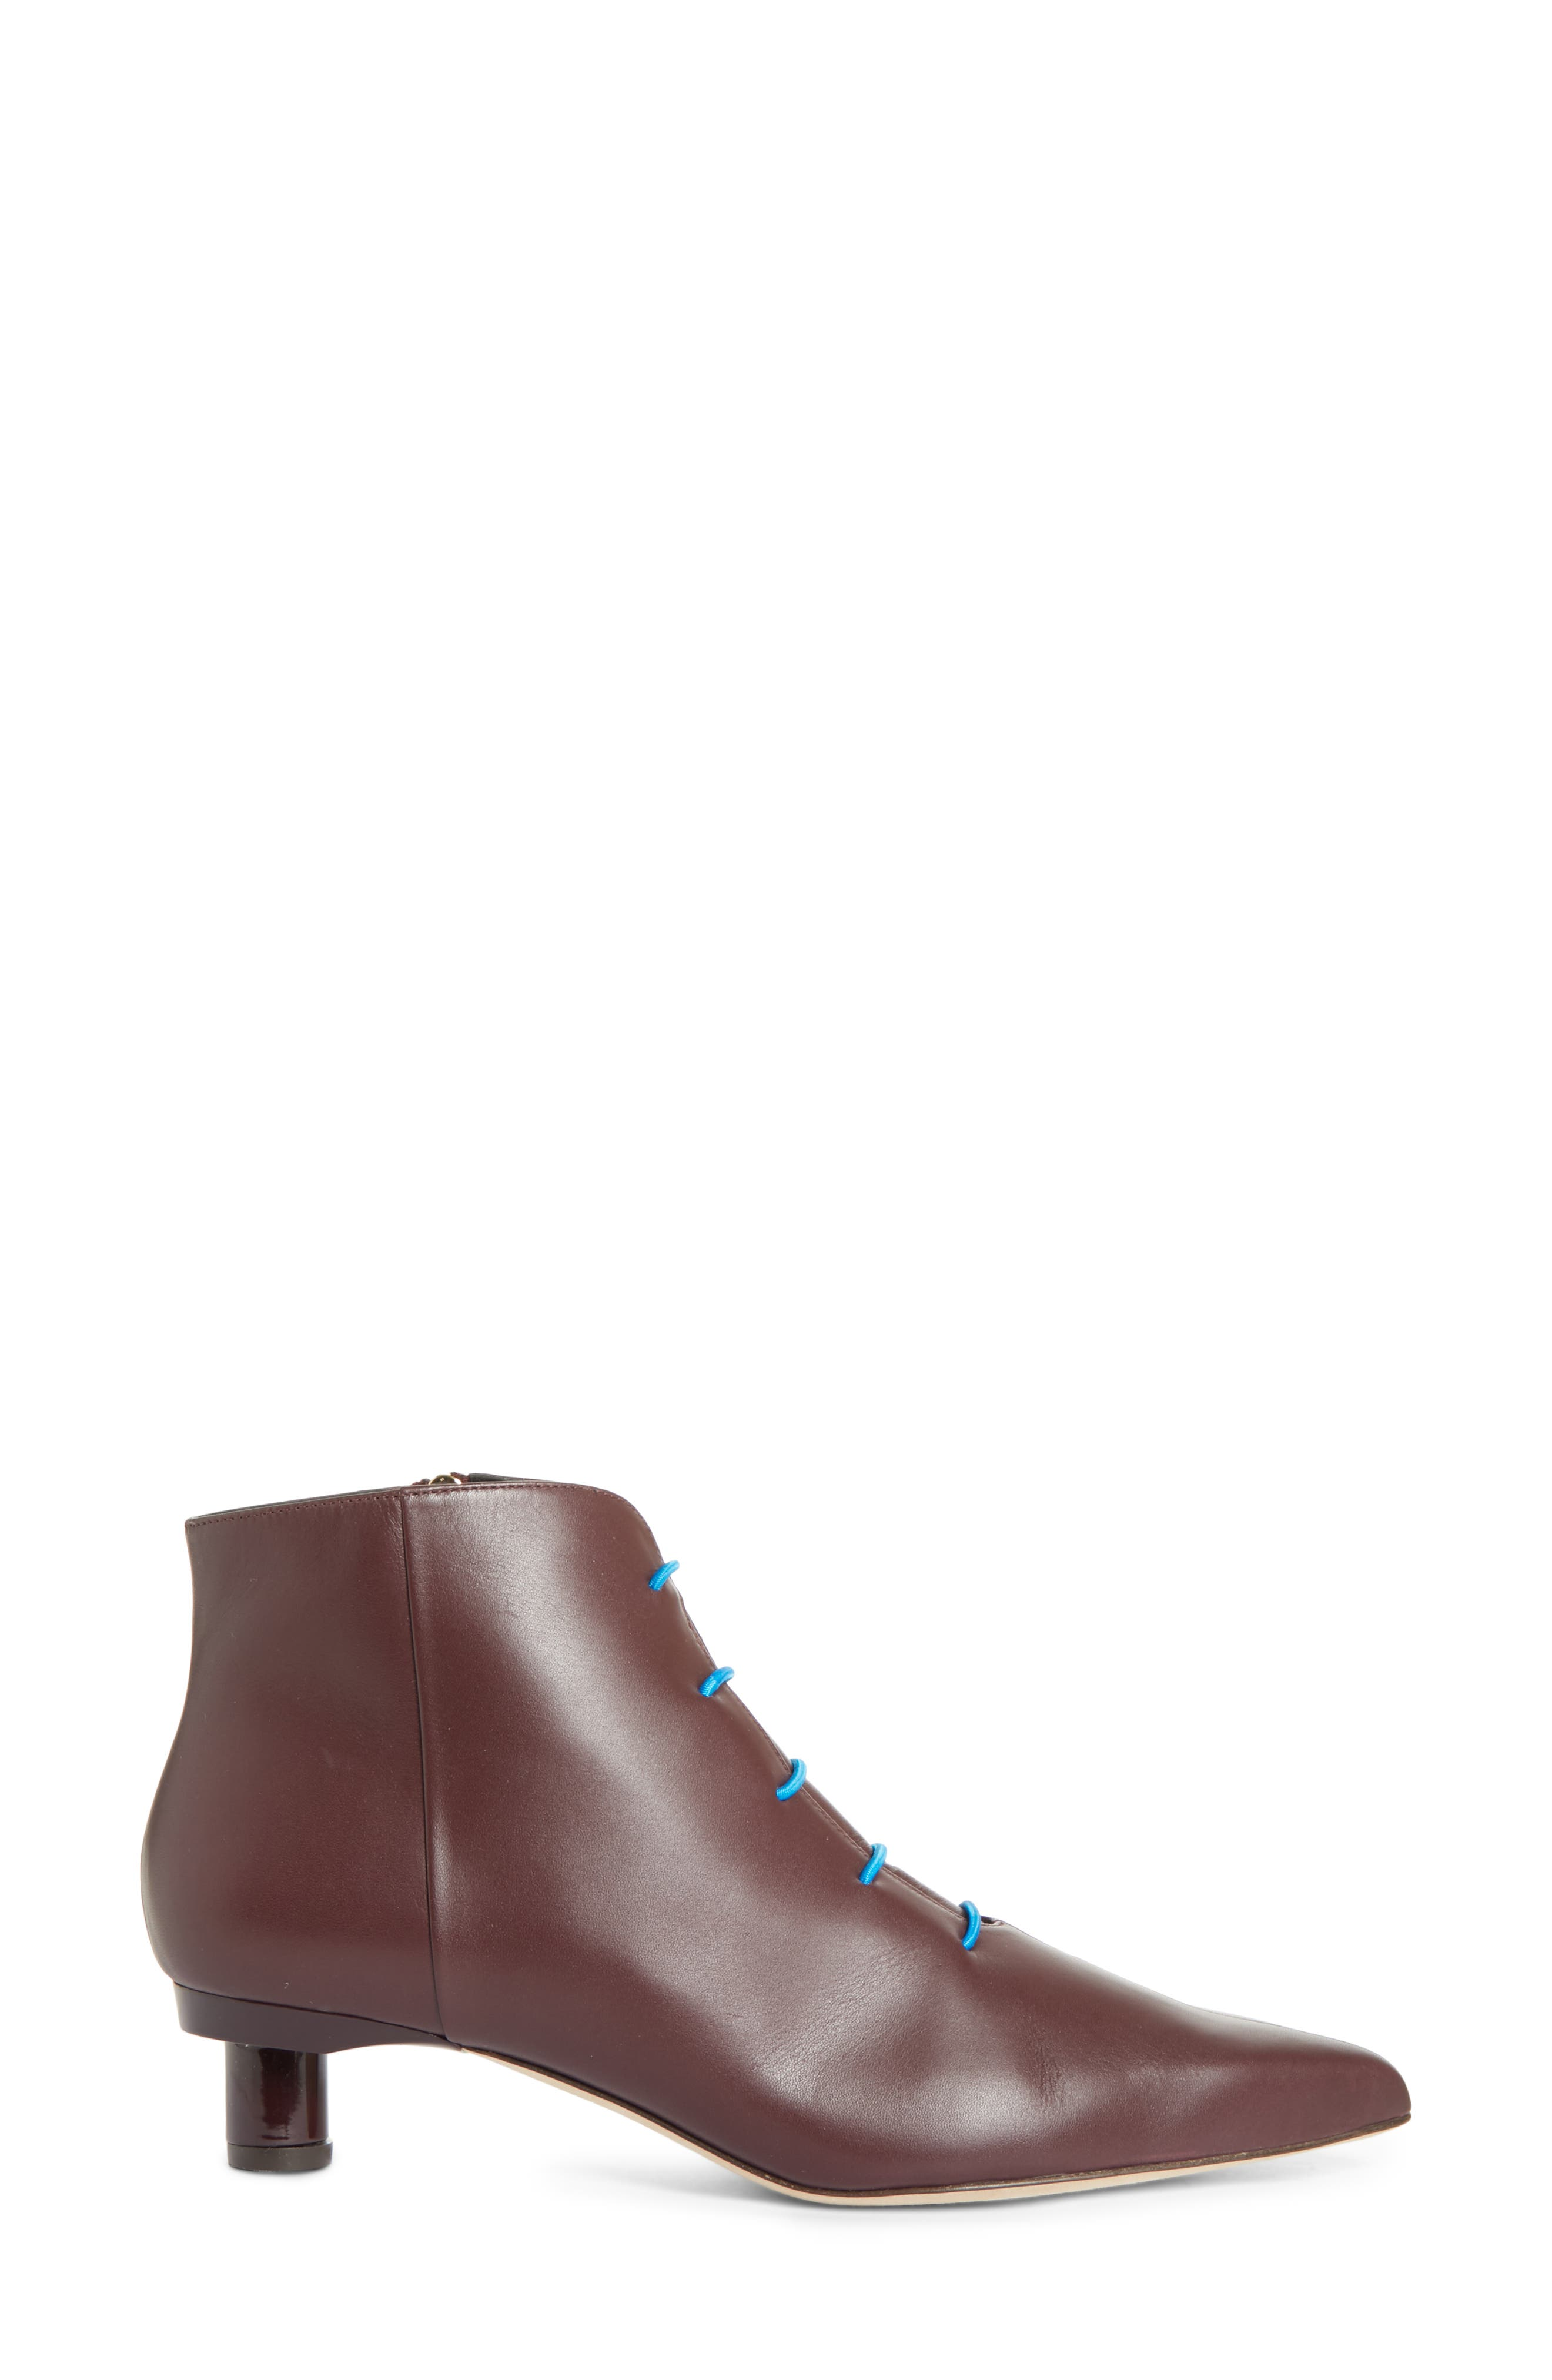 Asher Bootie,                             Alternate thumbnail 3, color,                             930